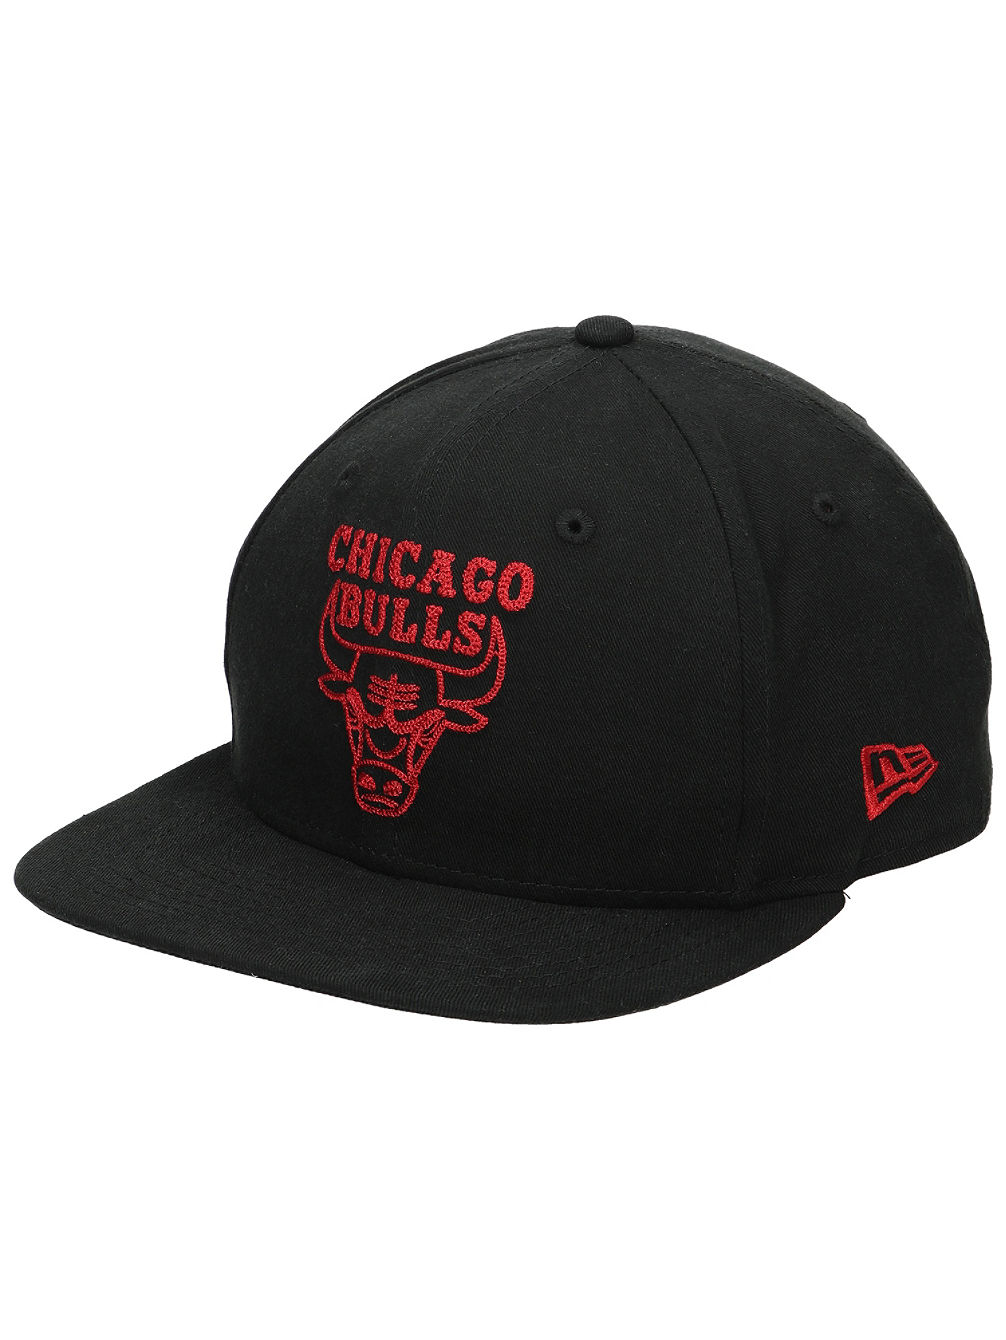 NBA Chainstitc H 950 Cap